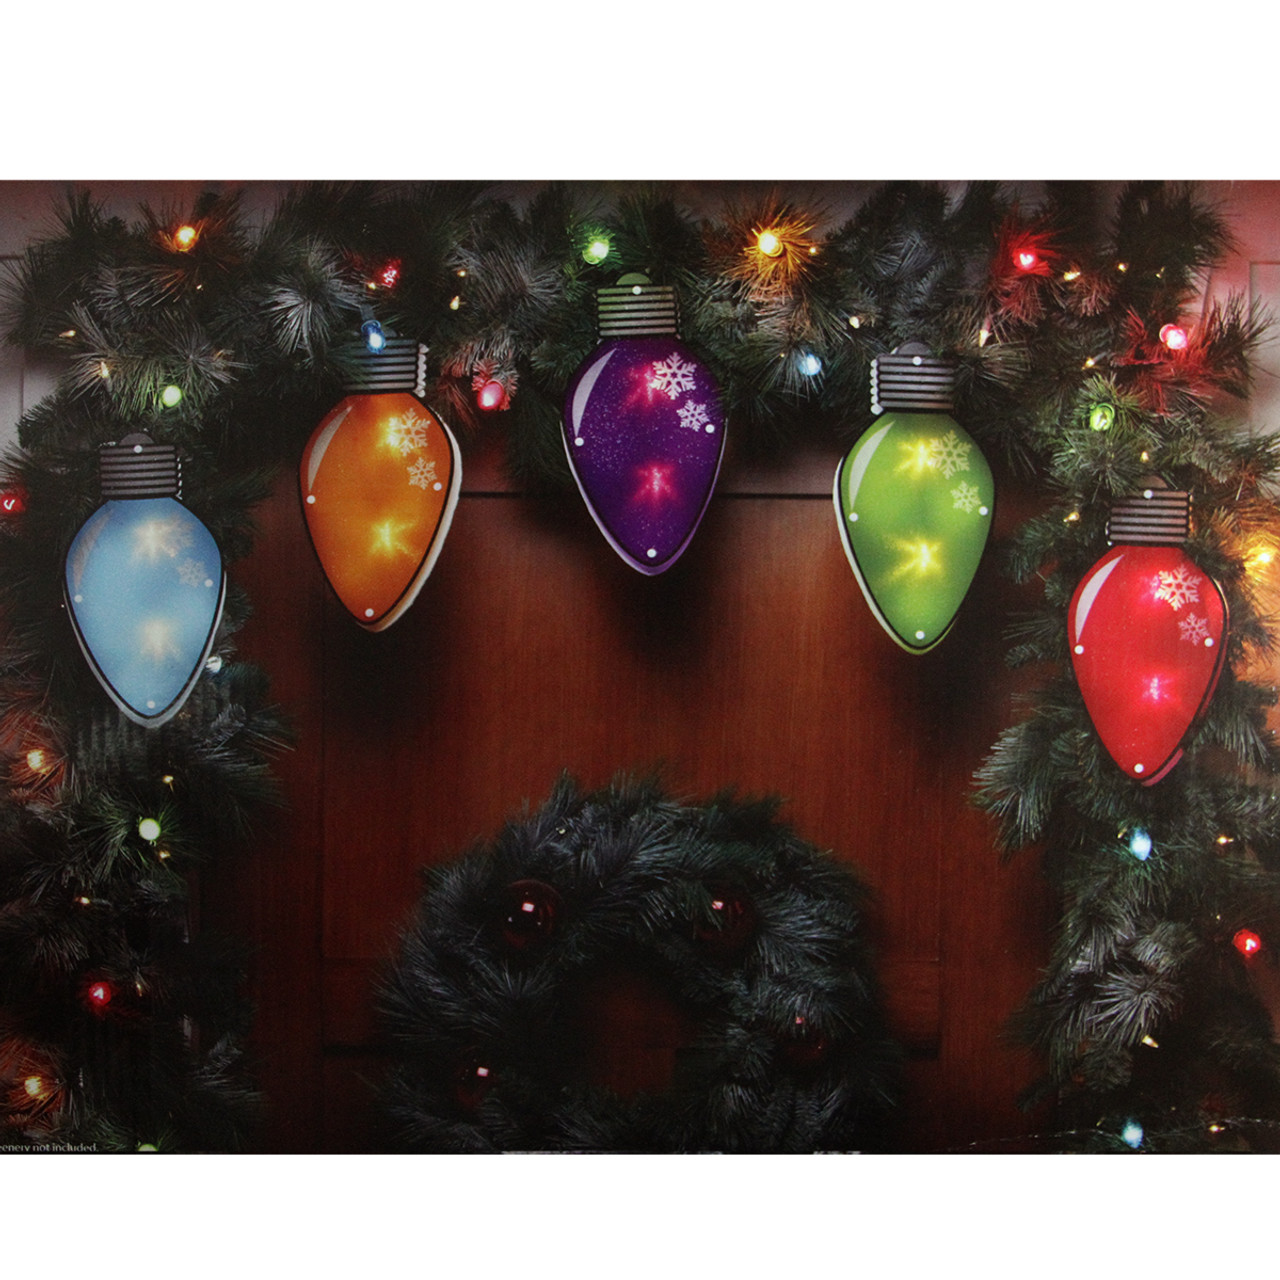 725 multi color shimmering c7 bulb christmas light garland with 10 clear mini lights white wire 31728963